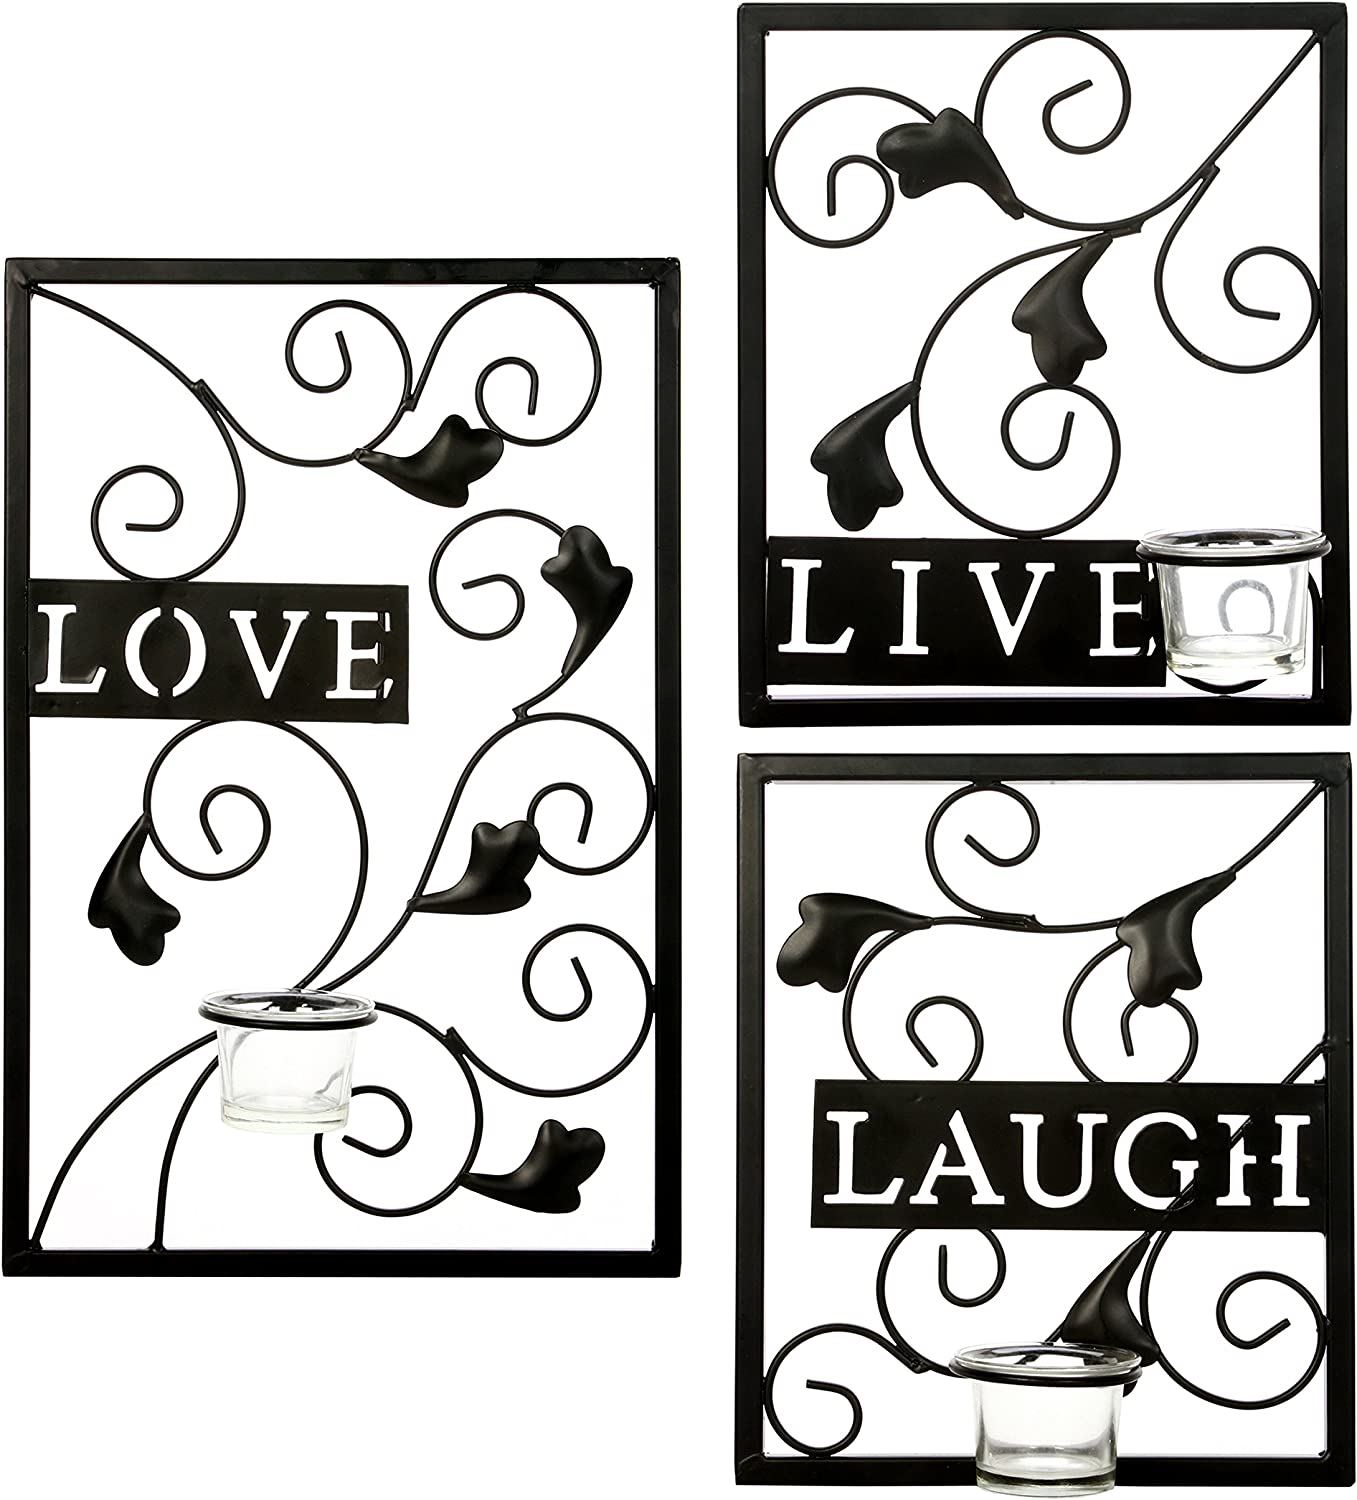 Hosley's Set of 3 Tealight Iron Wall Sconce - Laugh, Love, Live, Dark Brown, Hand Made by Artisans Farmhouse. Ideal Gift for Wedding, Special Occasion, Spa, Tea Light / Votive Candle Gardens O3